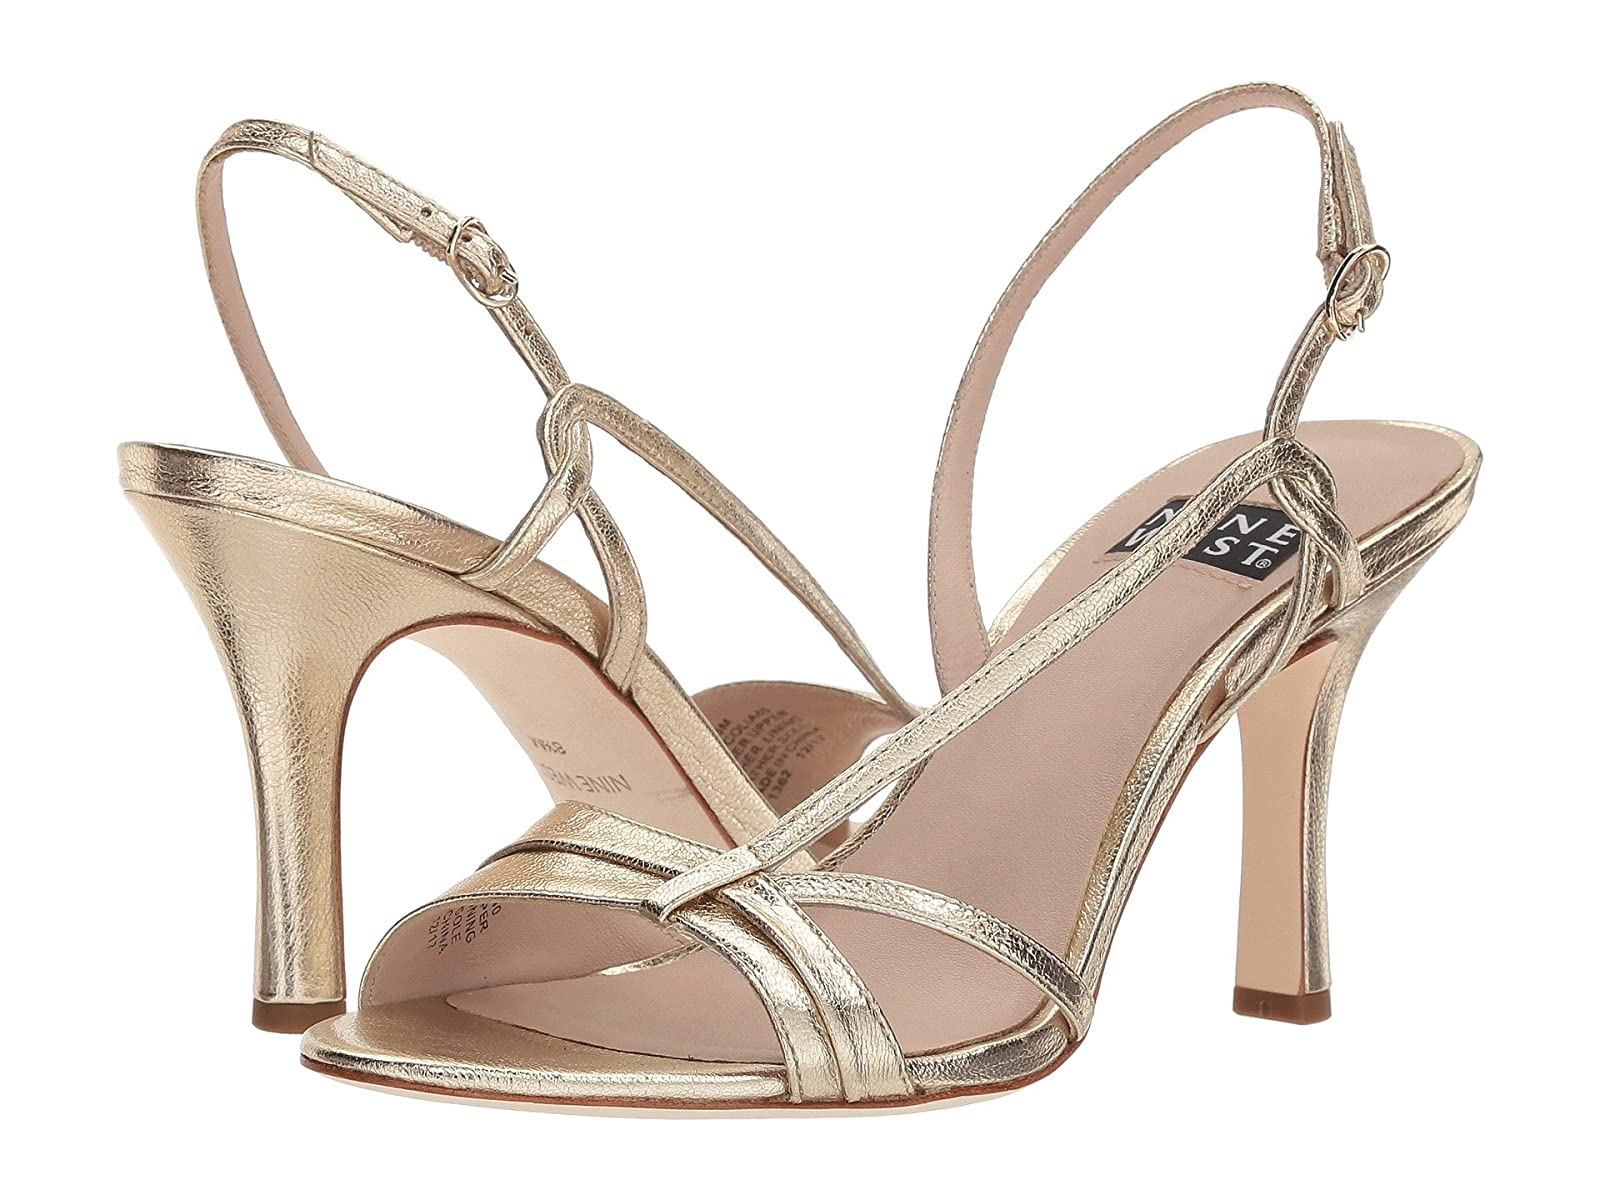 Nine West Accolia /Atmospheric 40th Anniversary Heeled Sandal /Atmospheric Accolia Simplicity/Man's/Woman's 2c5459